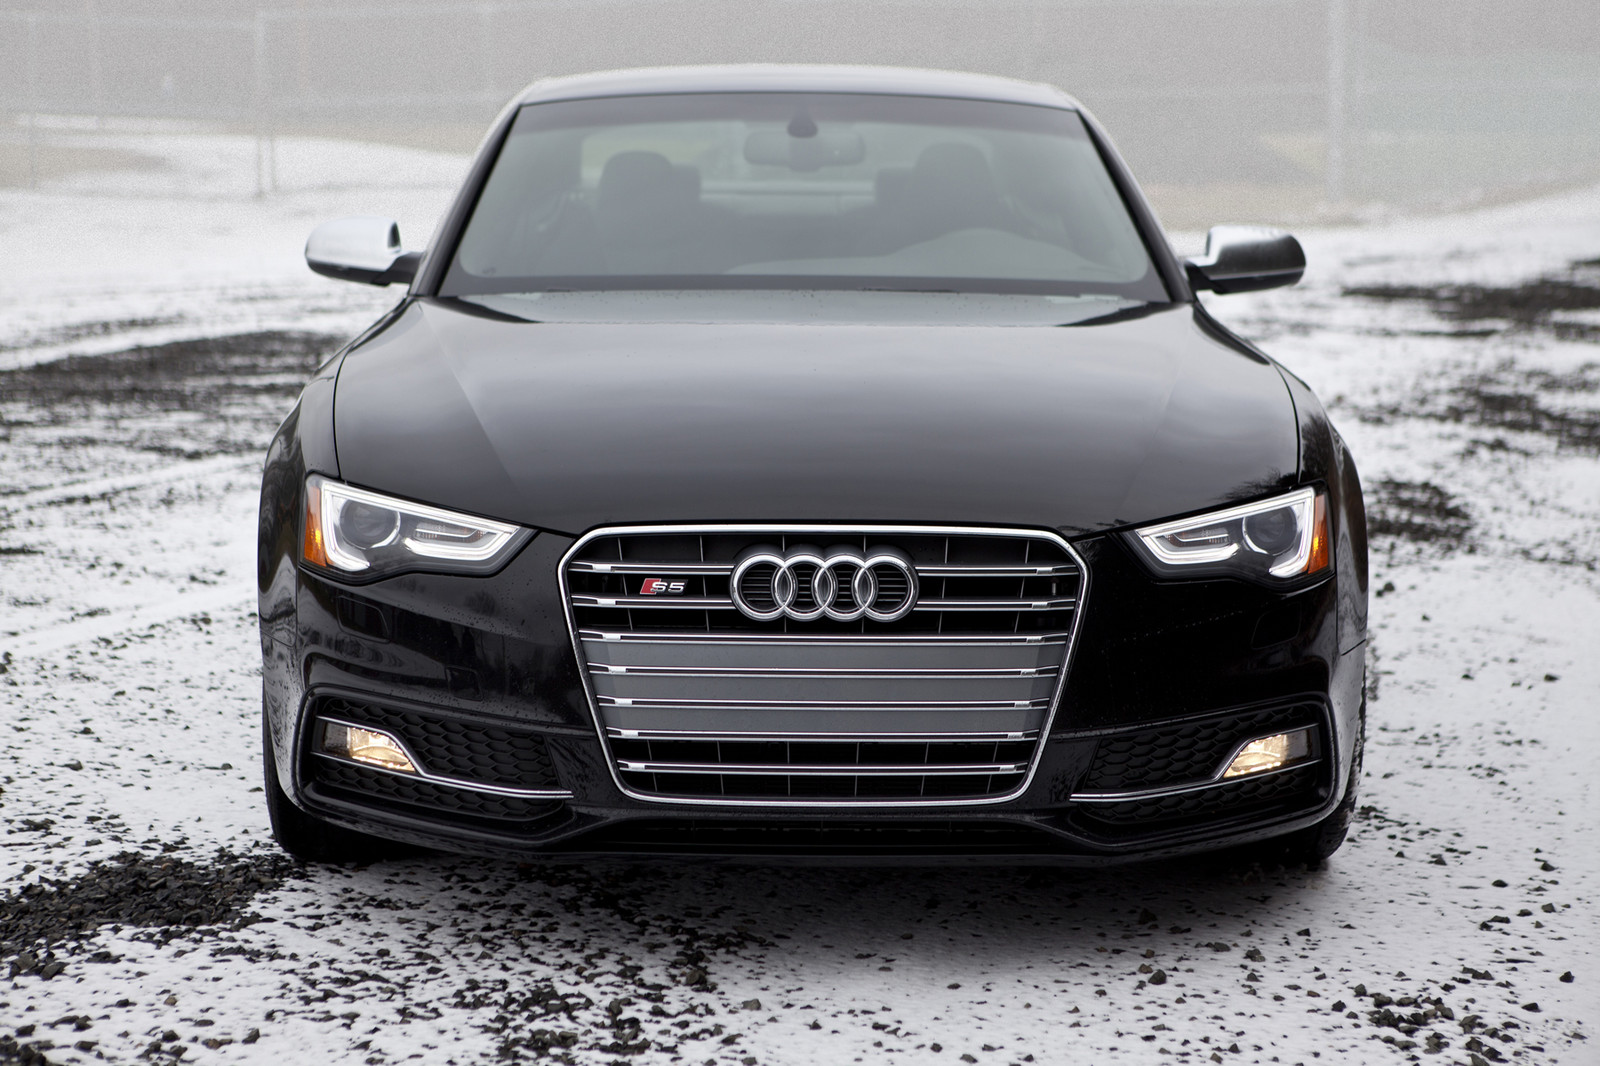 Stock 2015 Audi S5 1/4 mile Drag Racing timeslip specs 0-60 ...